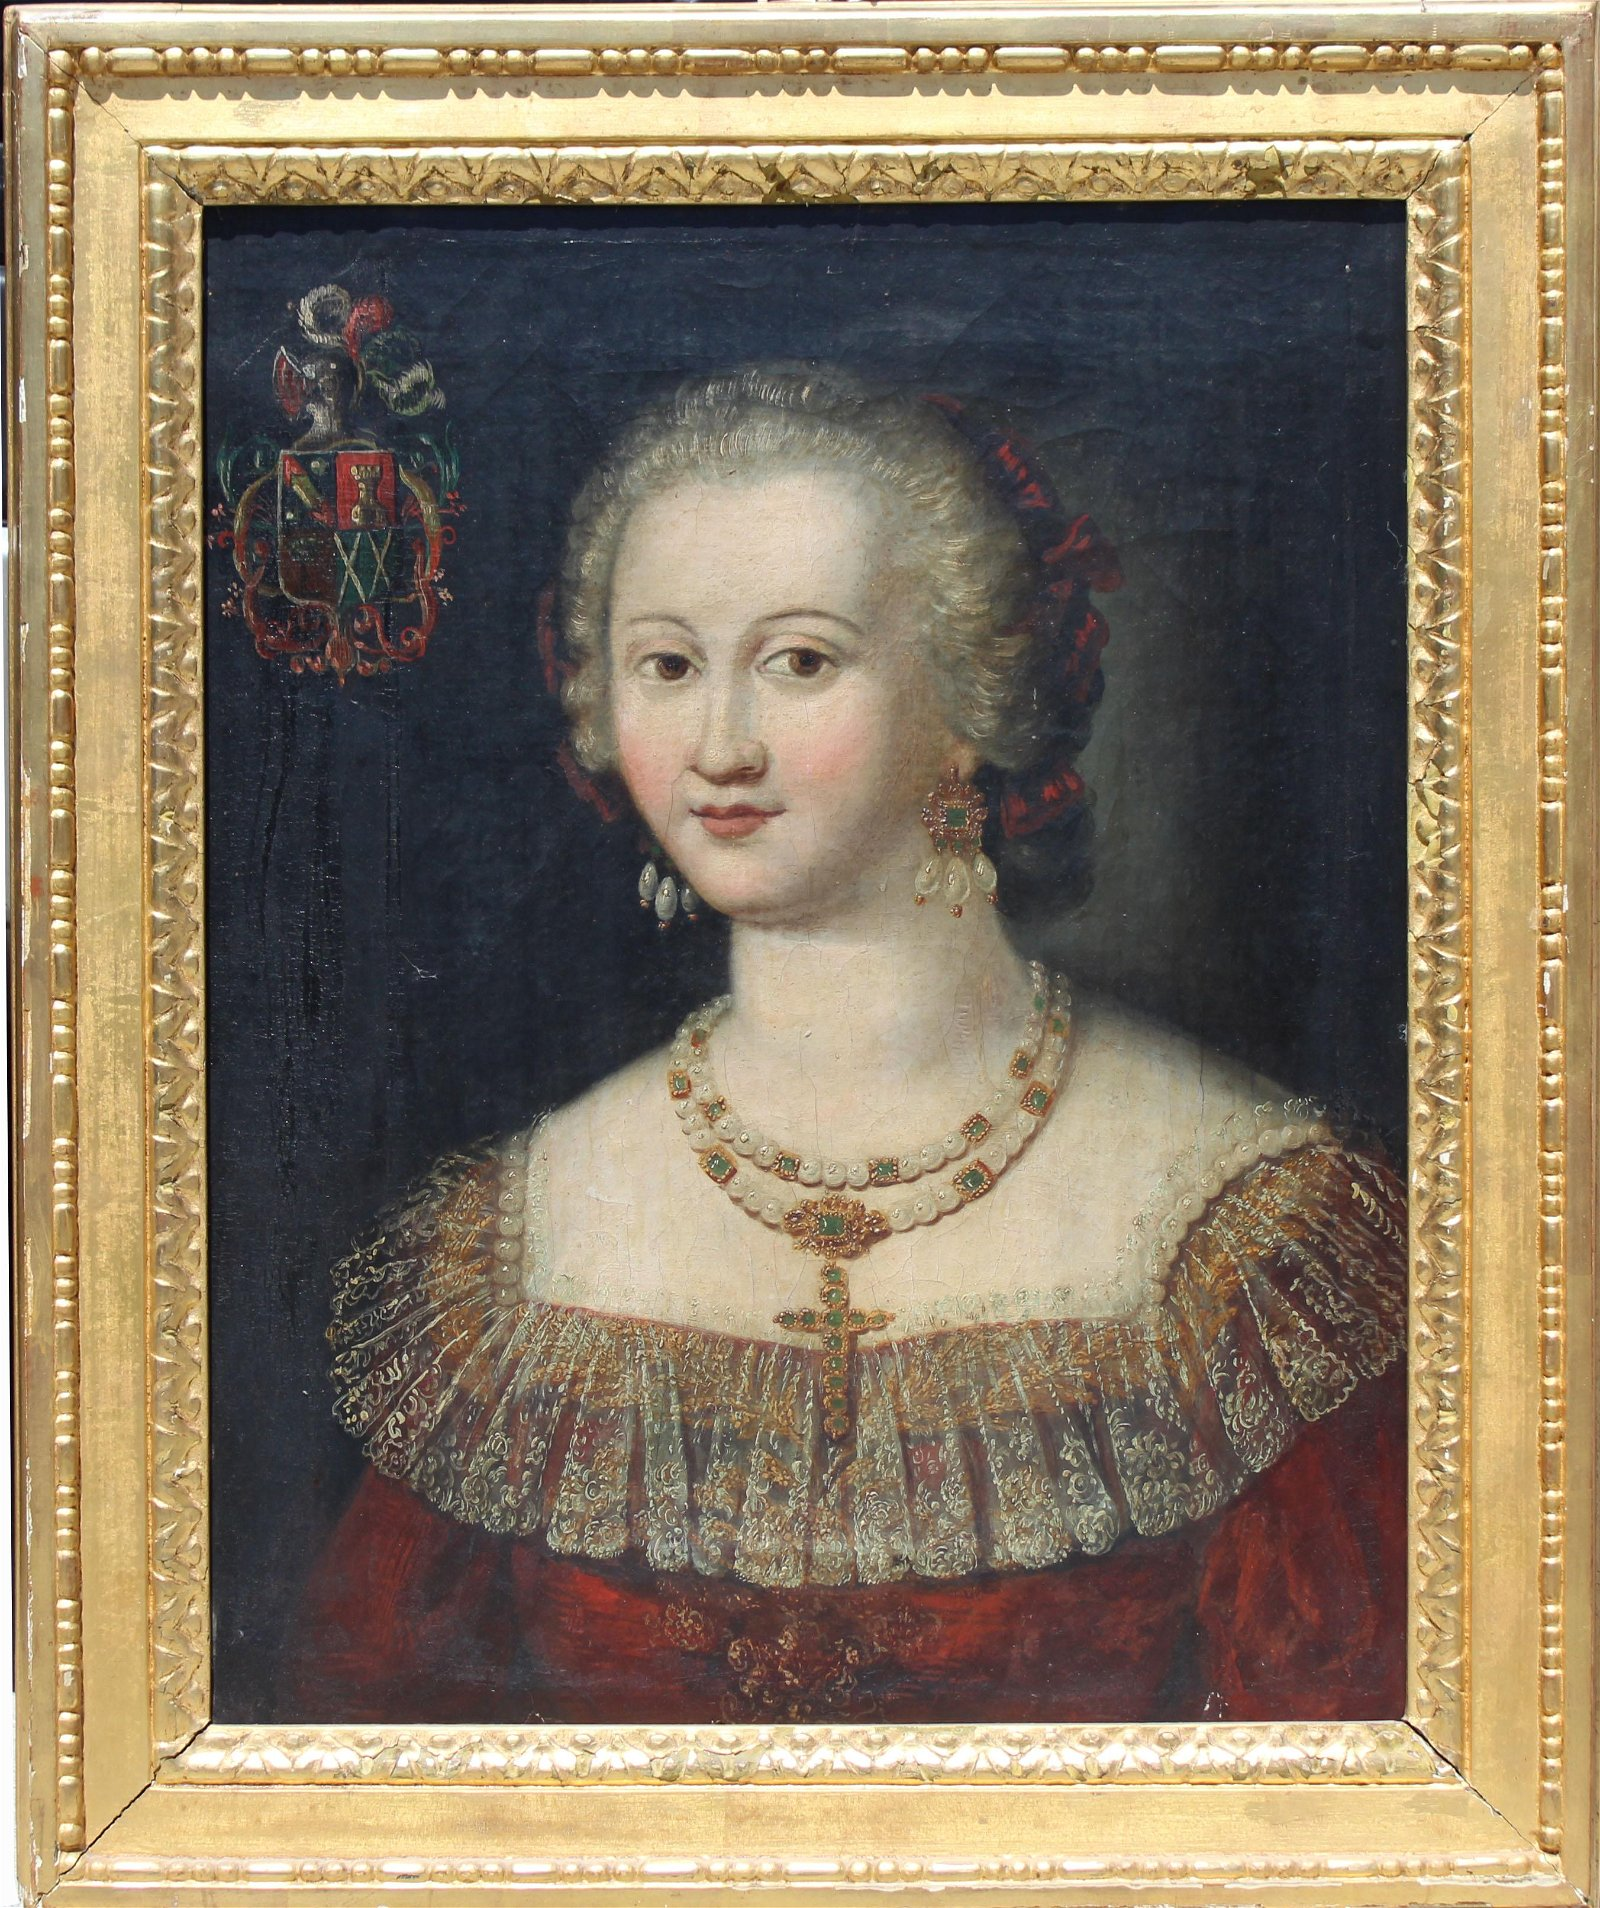 17th C. Spanish School Portrait of a Woman